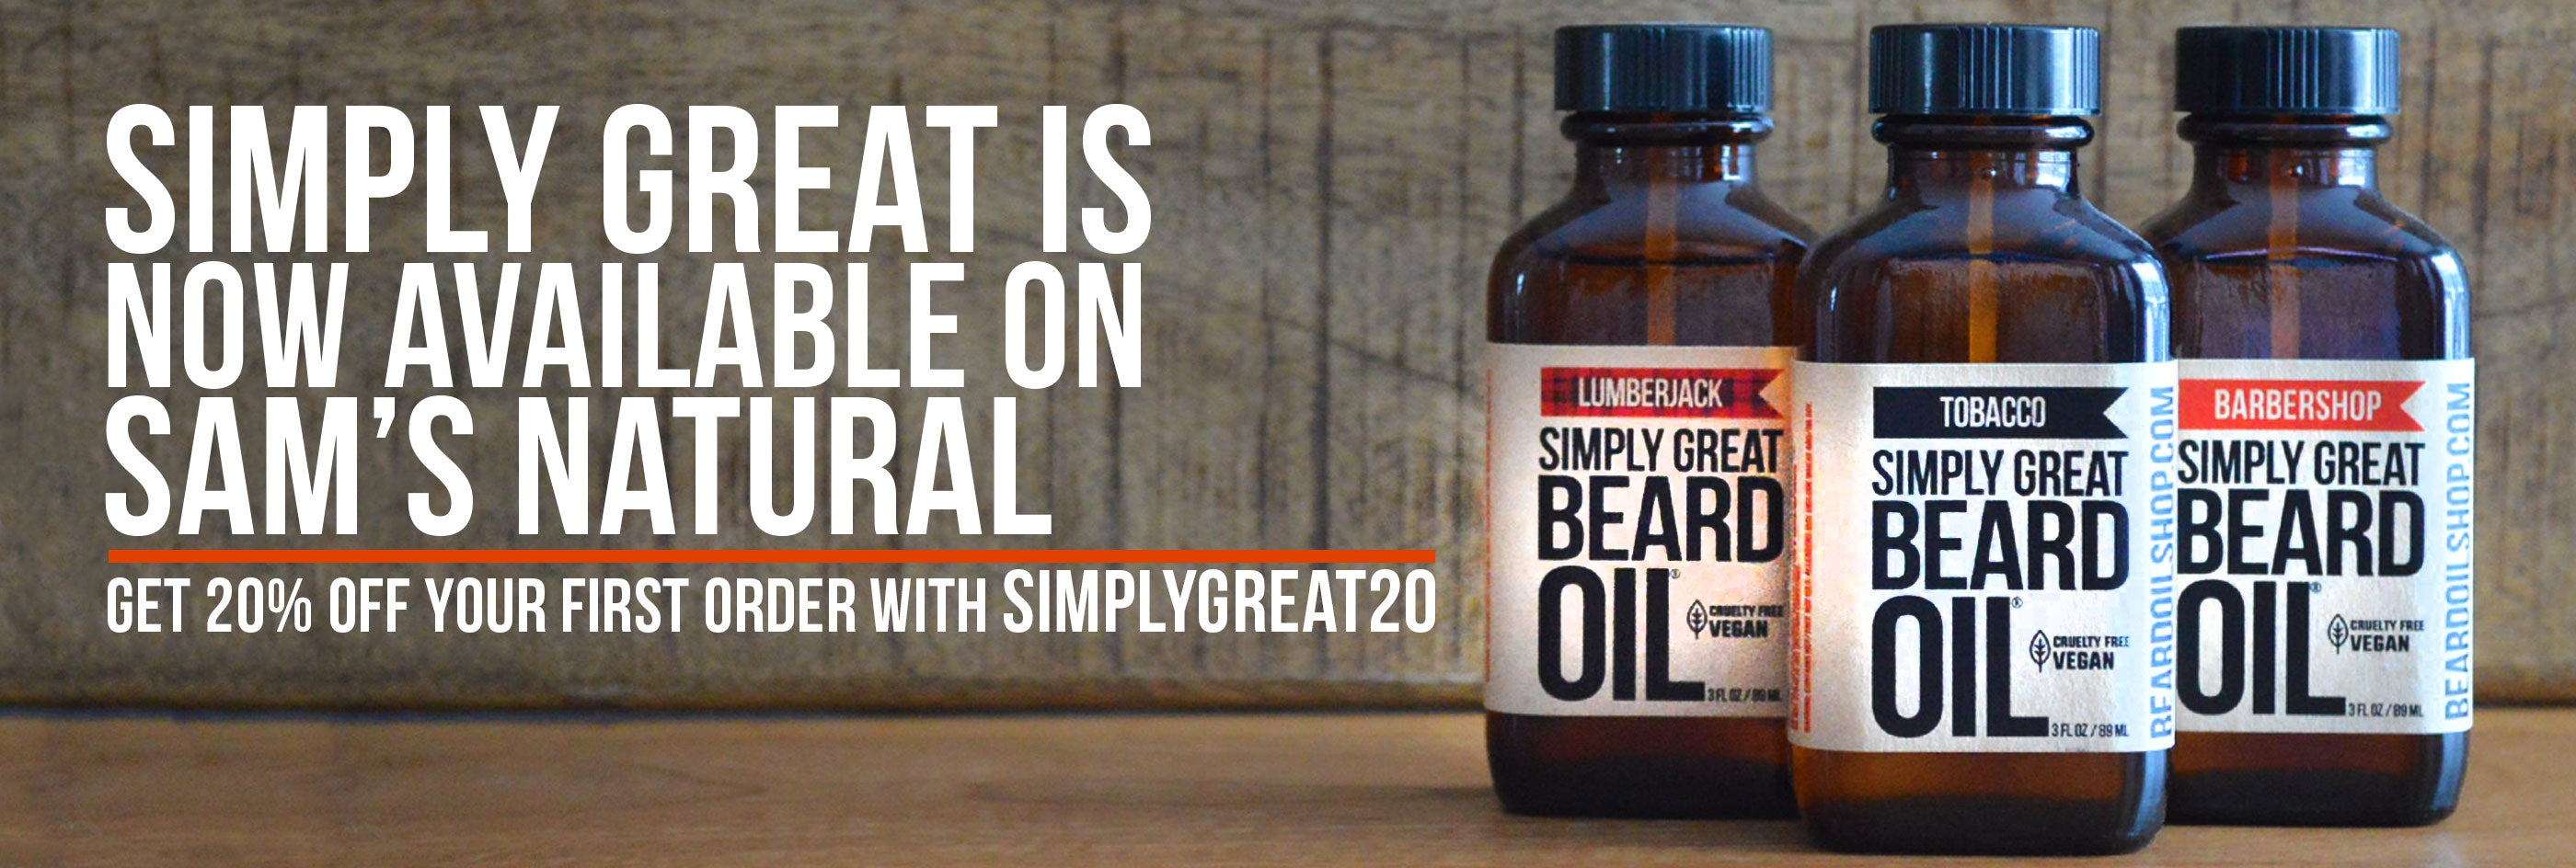 Simply the best beard oil known to man - Sam's Natural Simply Great Beard Oil